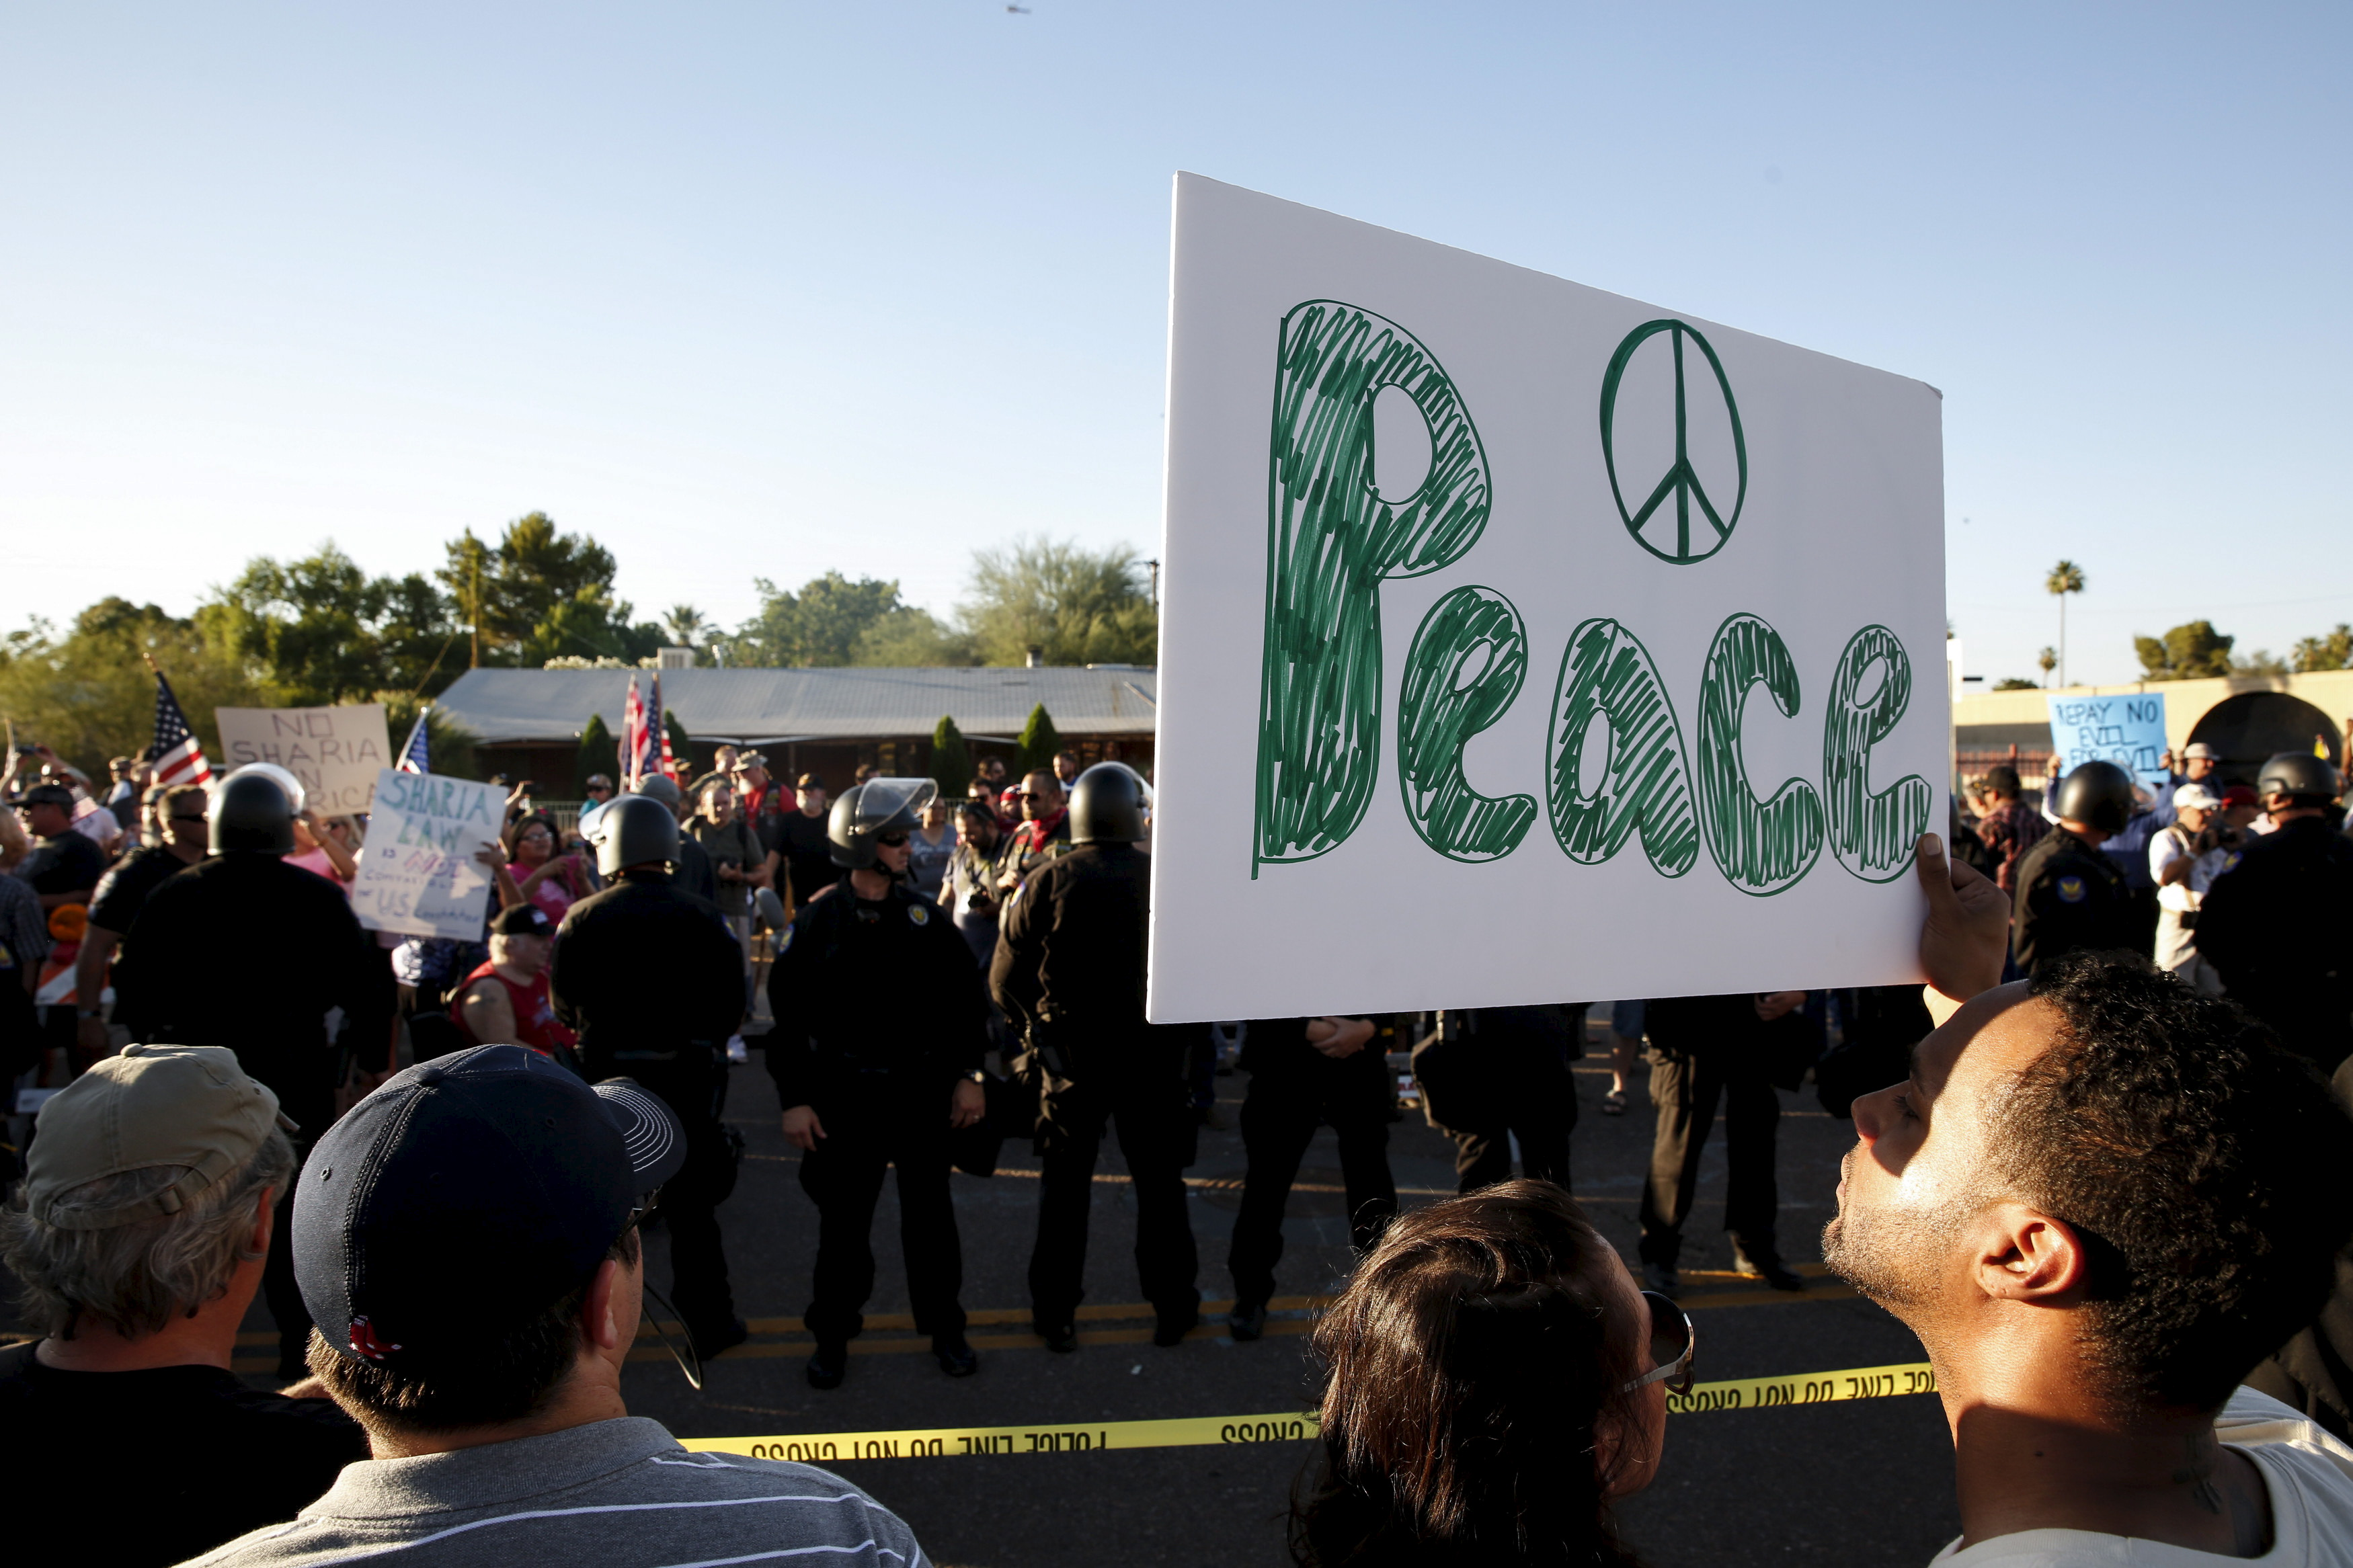 """Counter demonstrators look over to those attending the """"Freedom of Speech Rally Round II"""" outside the Islamic Community Center of Phoenix, Arizona May 29, 2015. Photo by Nancy Wiechec/Reuters."""